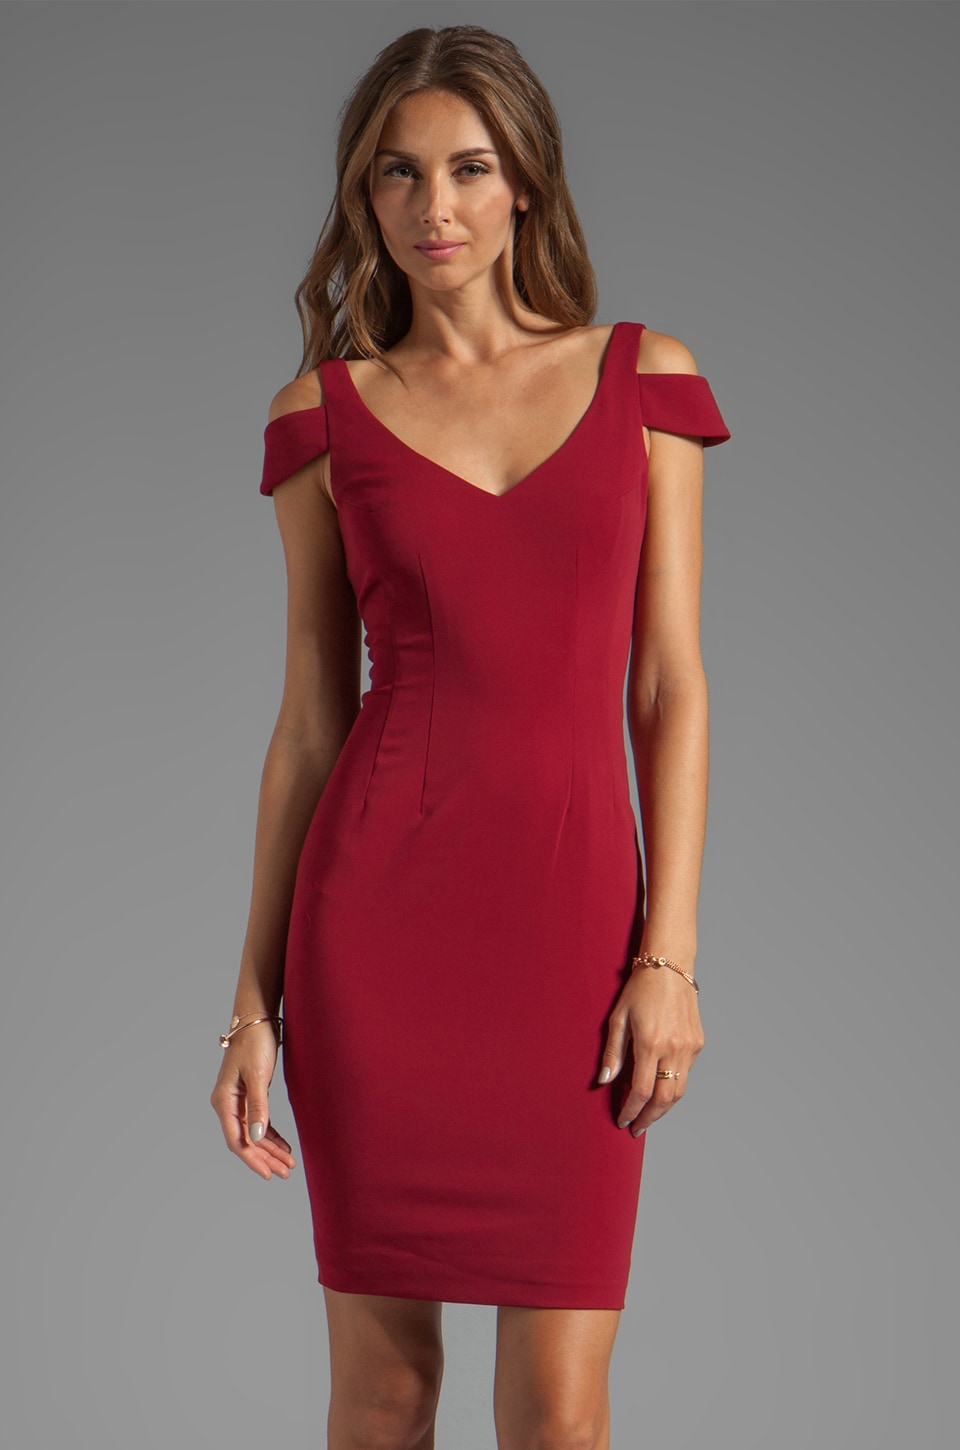 Jay Godfrey El Camino Dress in Wine